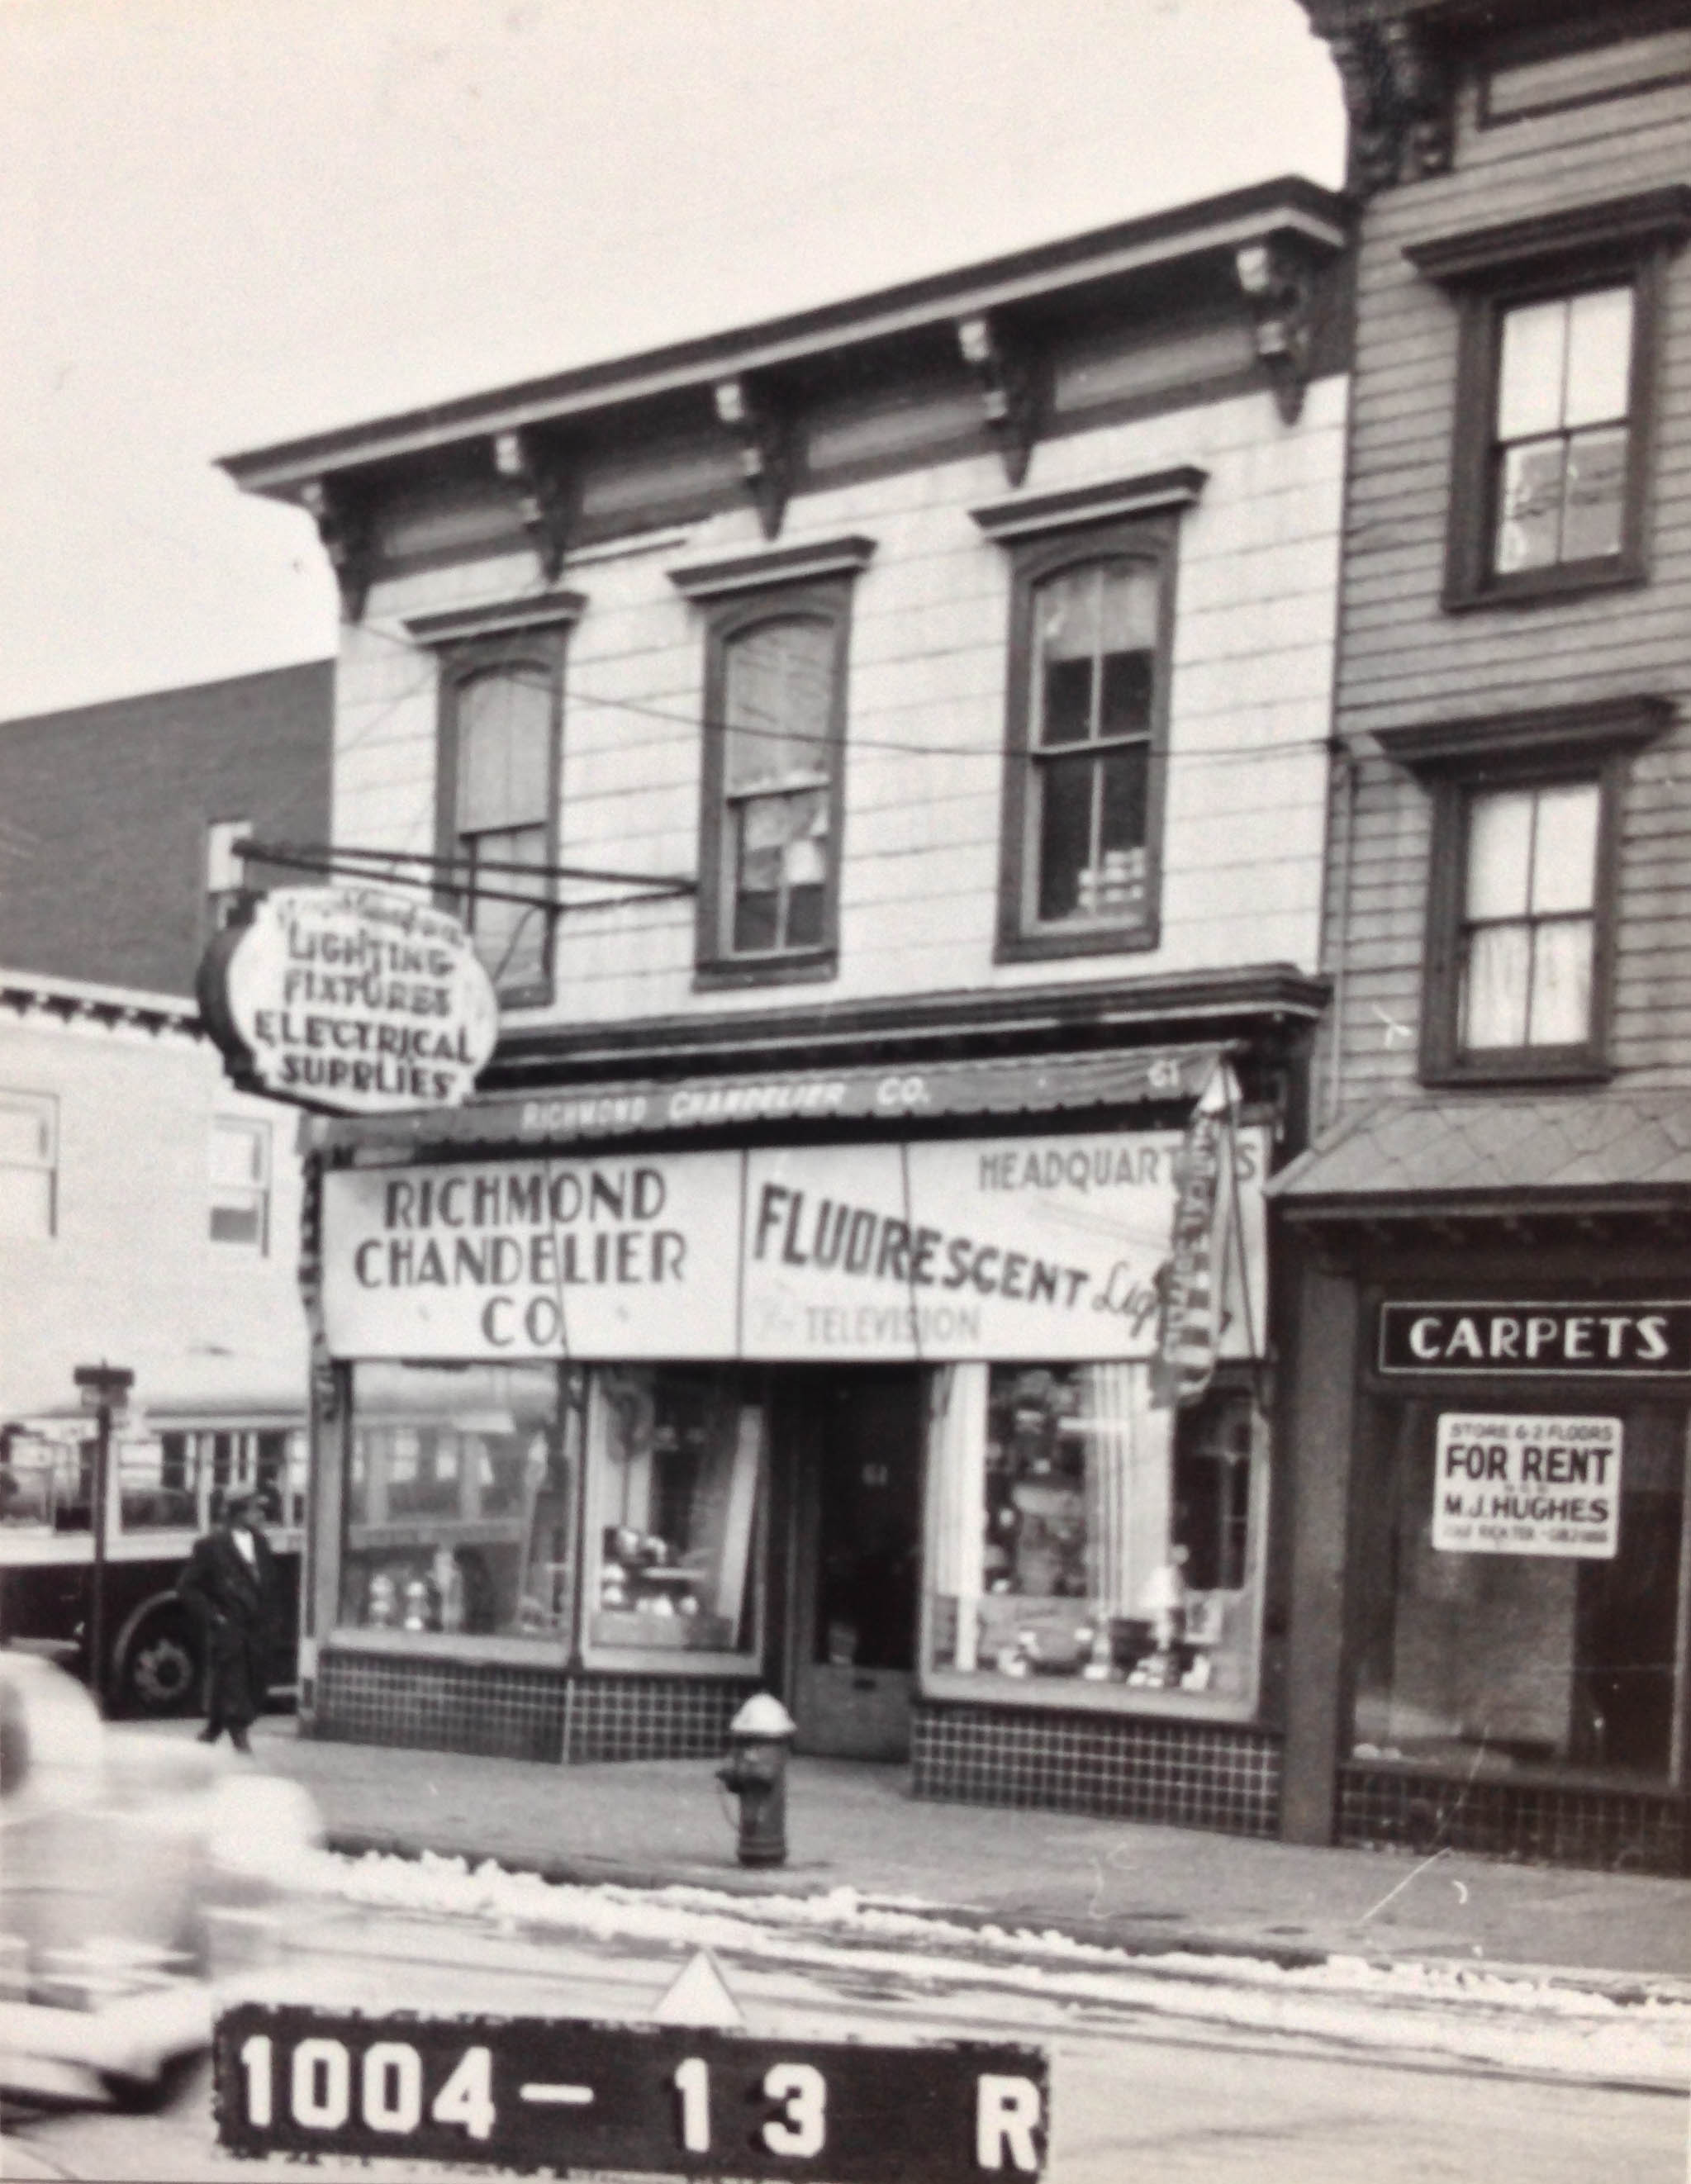 61 Richmond Avenue, Staten Island, circa 1940. Richmond Chandelier opened in 1926, selling lighting fixtures and electoral supplies, and is still there today.Department of Finance Collection, NYC Municipal Archives.